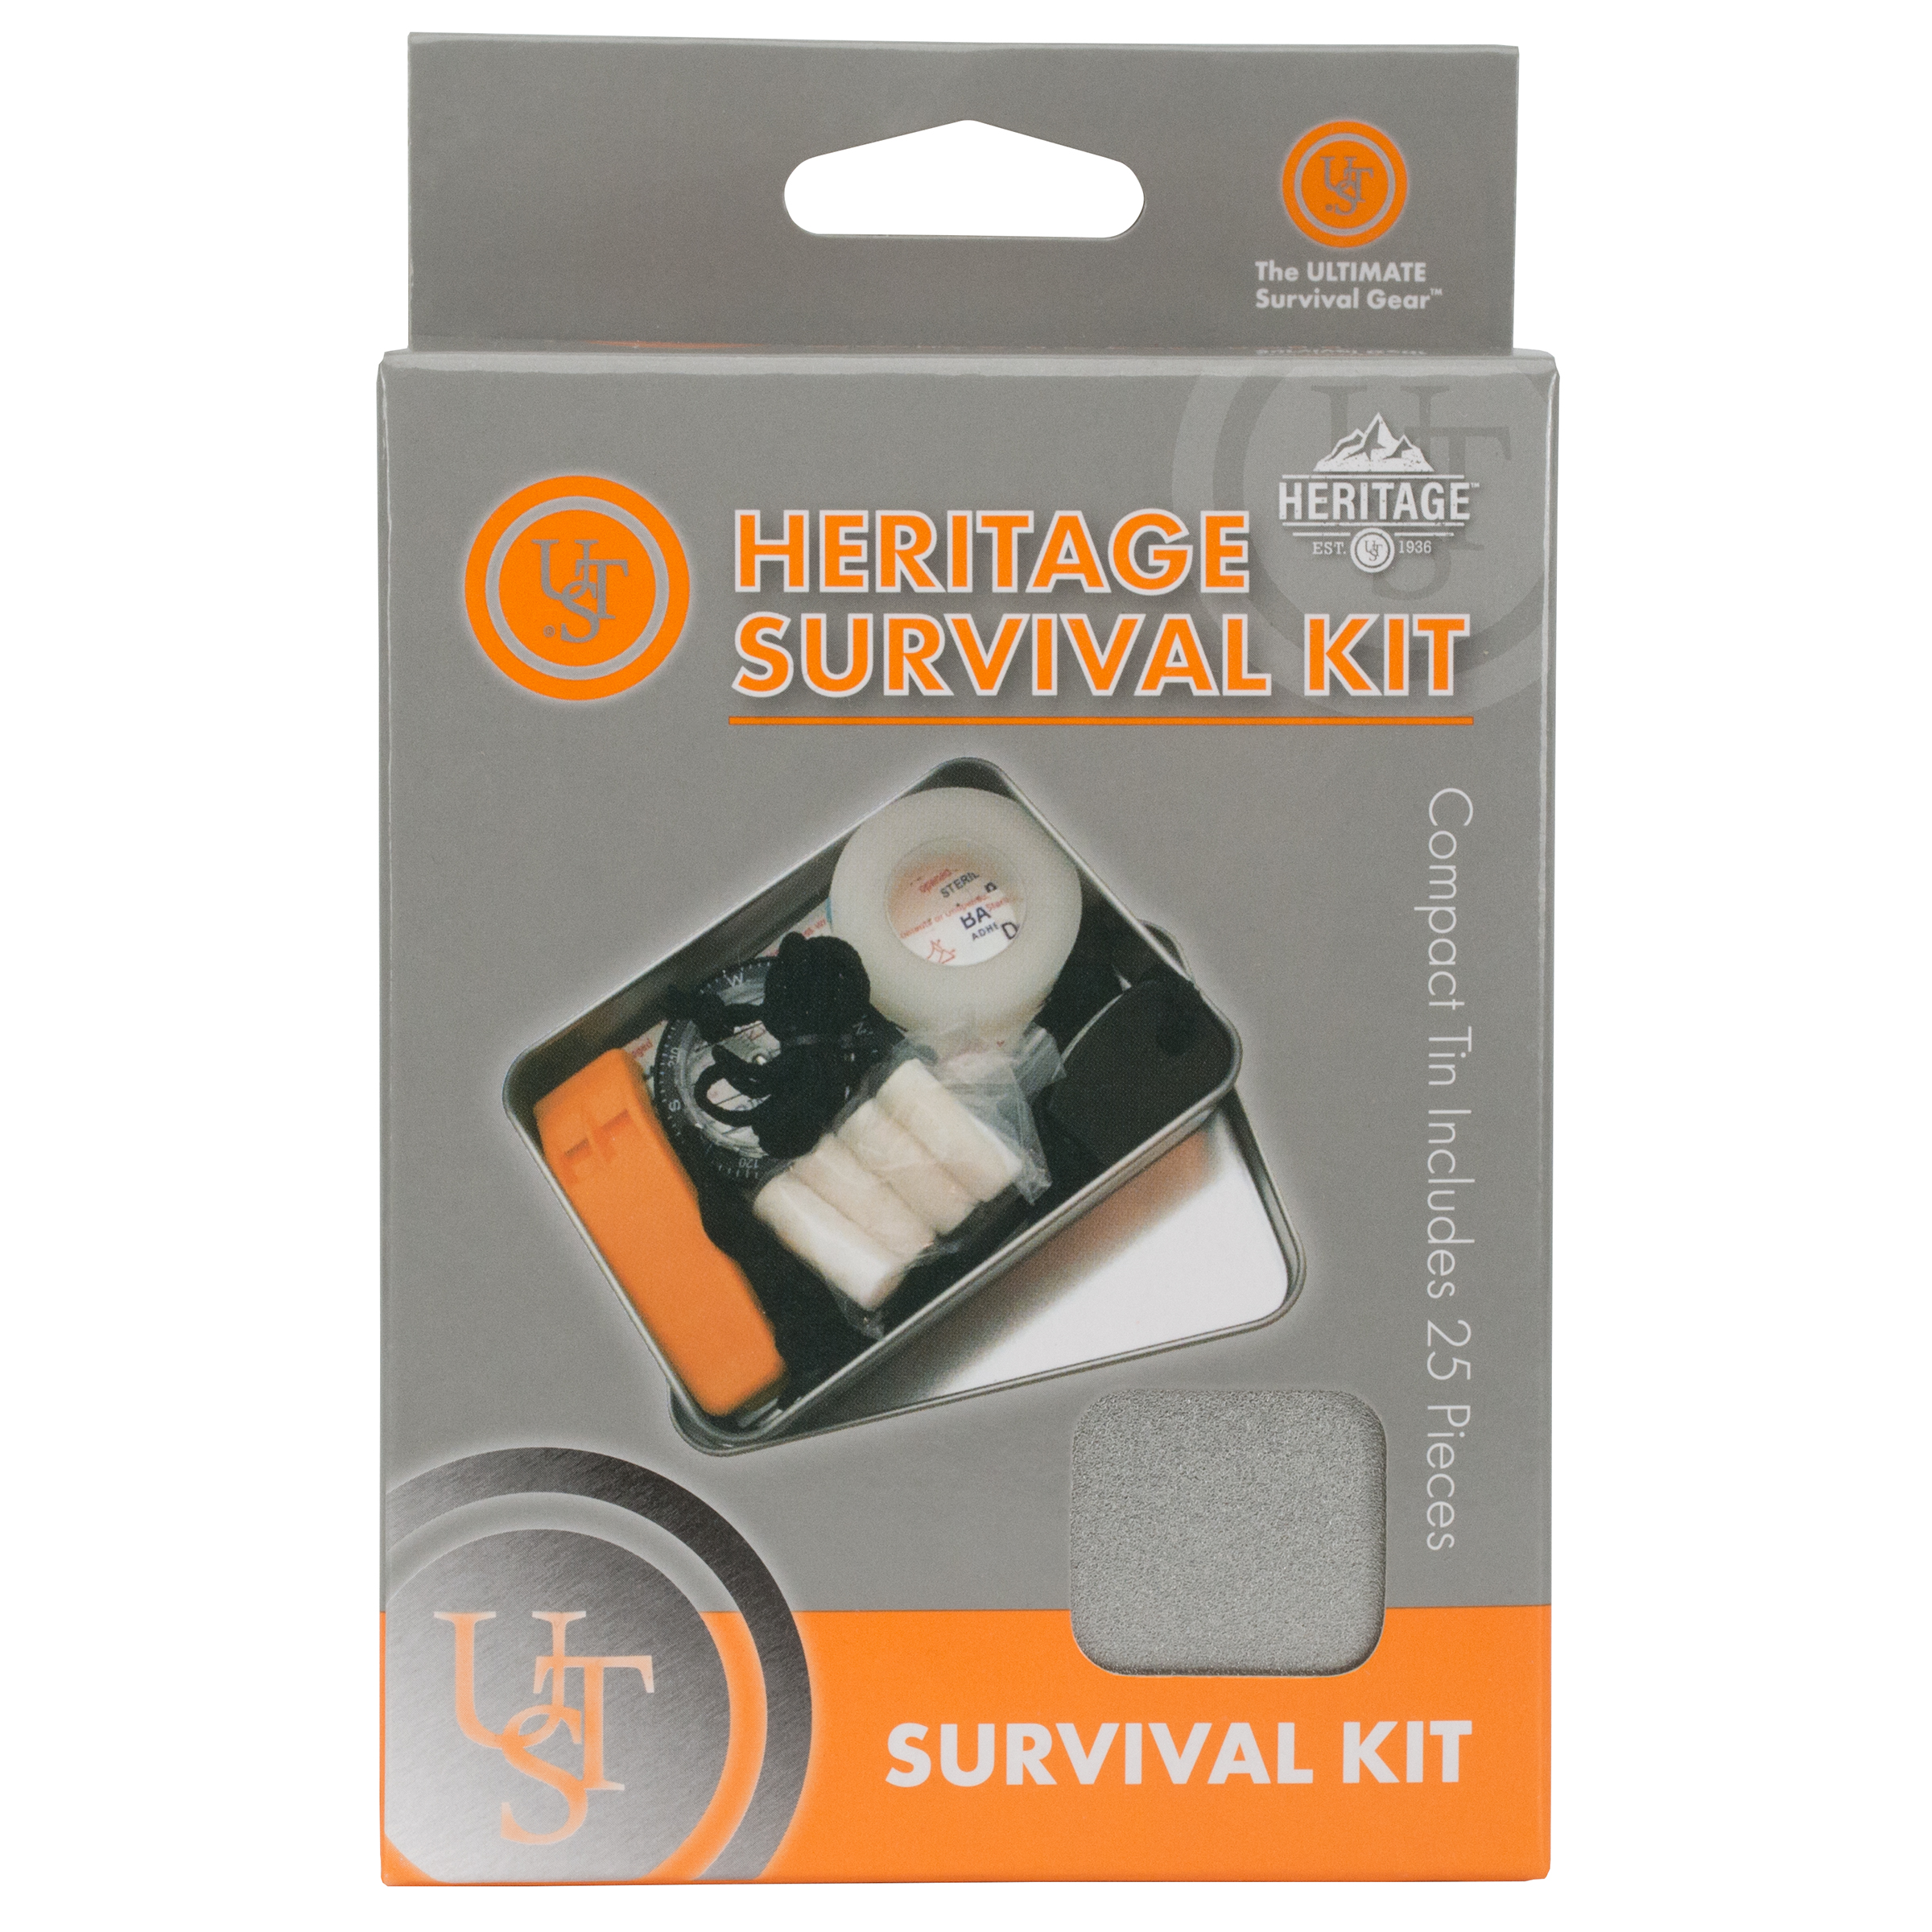 20-12058 - UST Brands Heritage Survival Kit Peggable Box